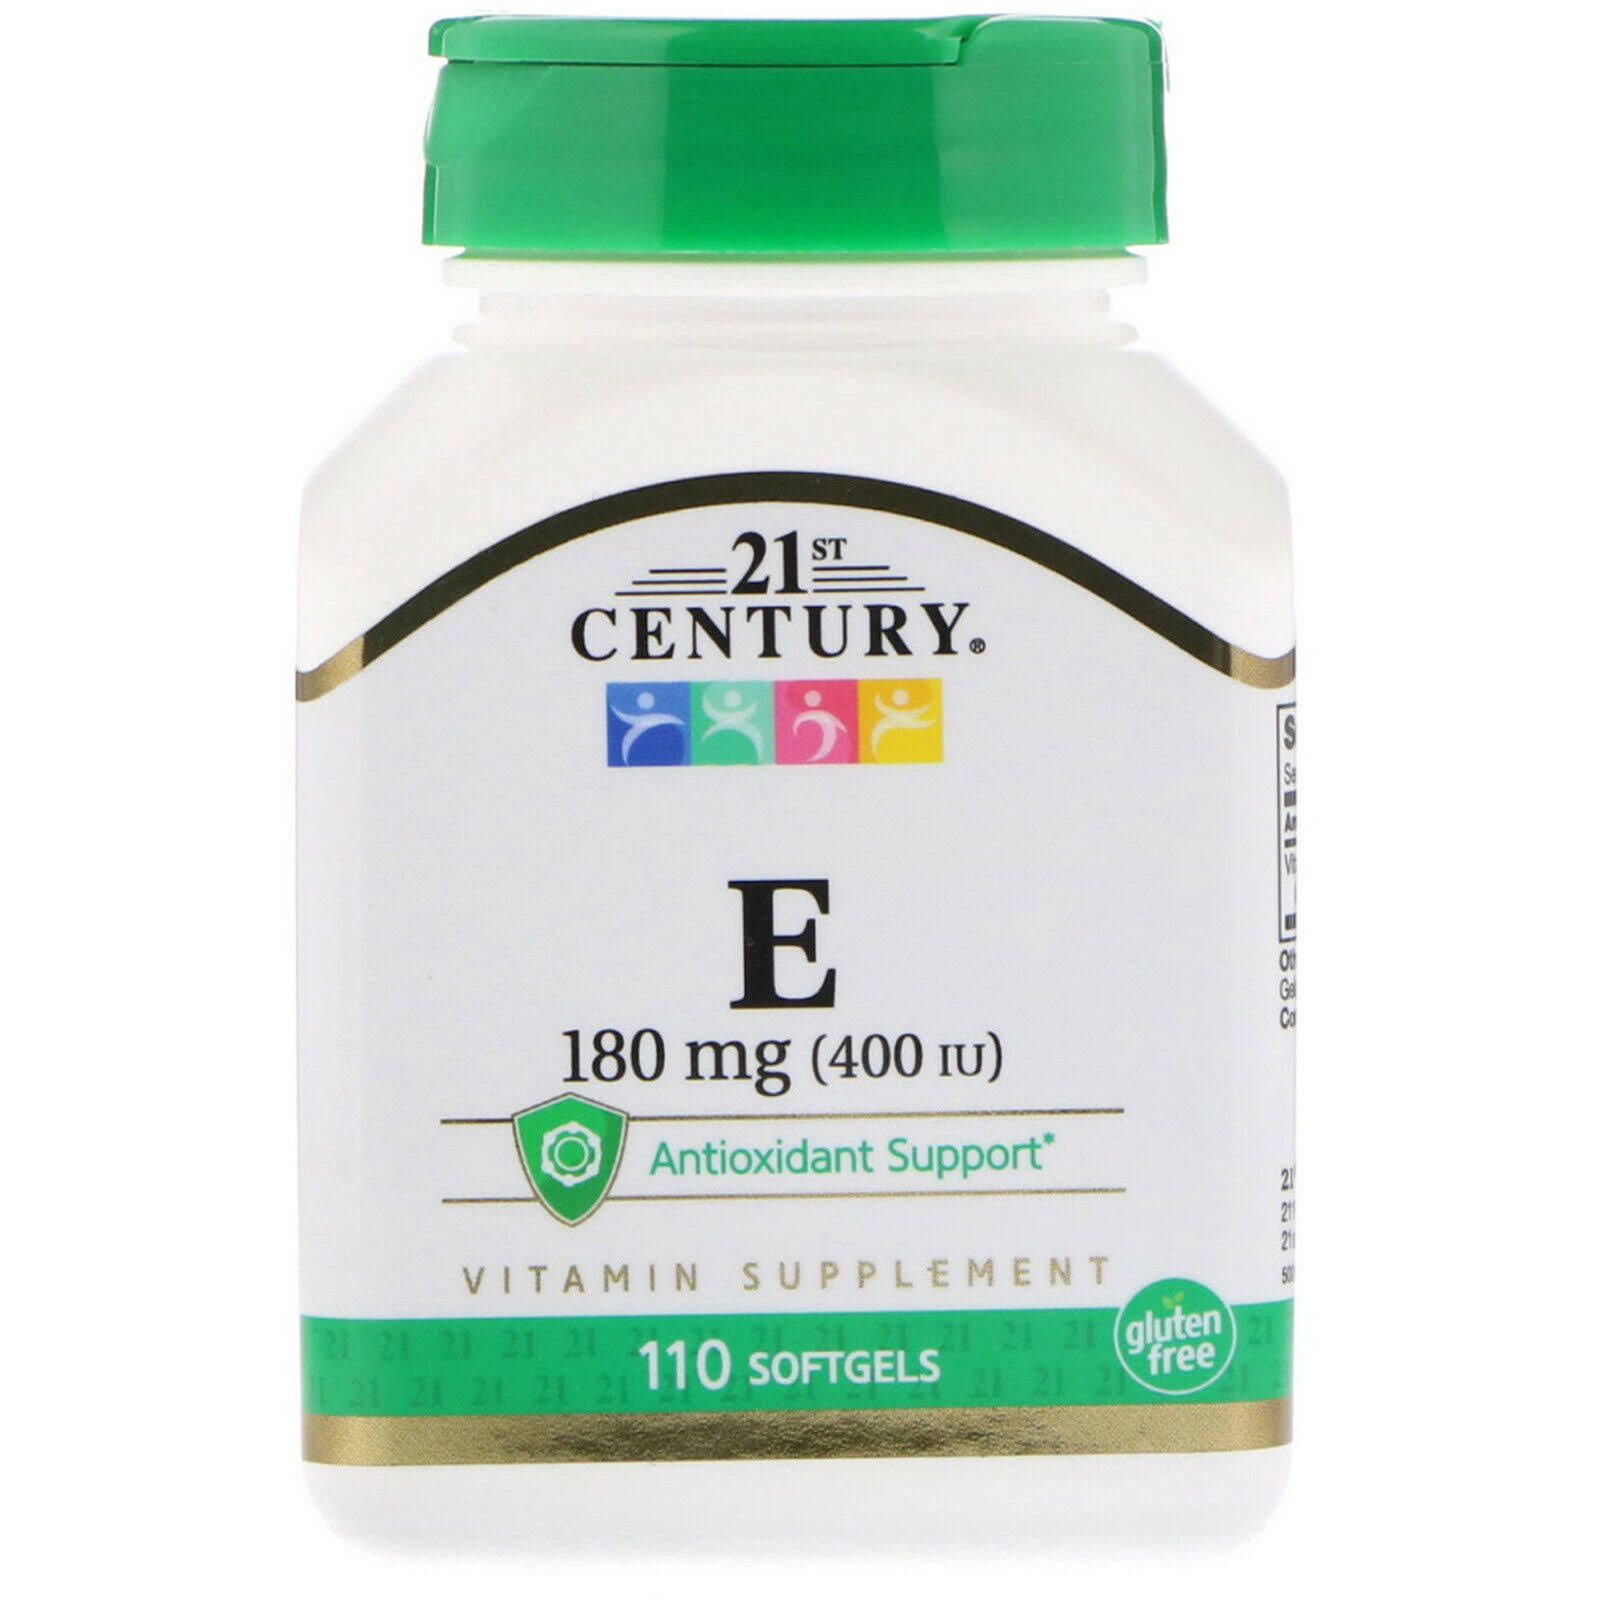 21st Century E 400 Dietary Supplement - 110 Softgels